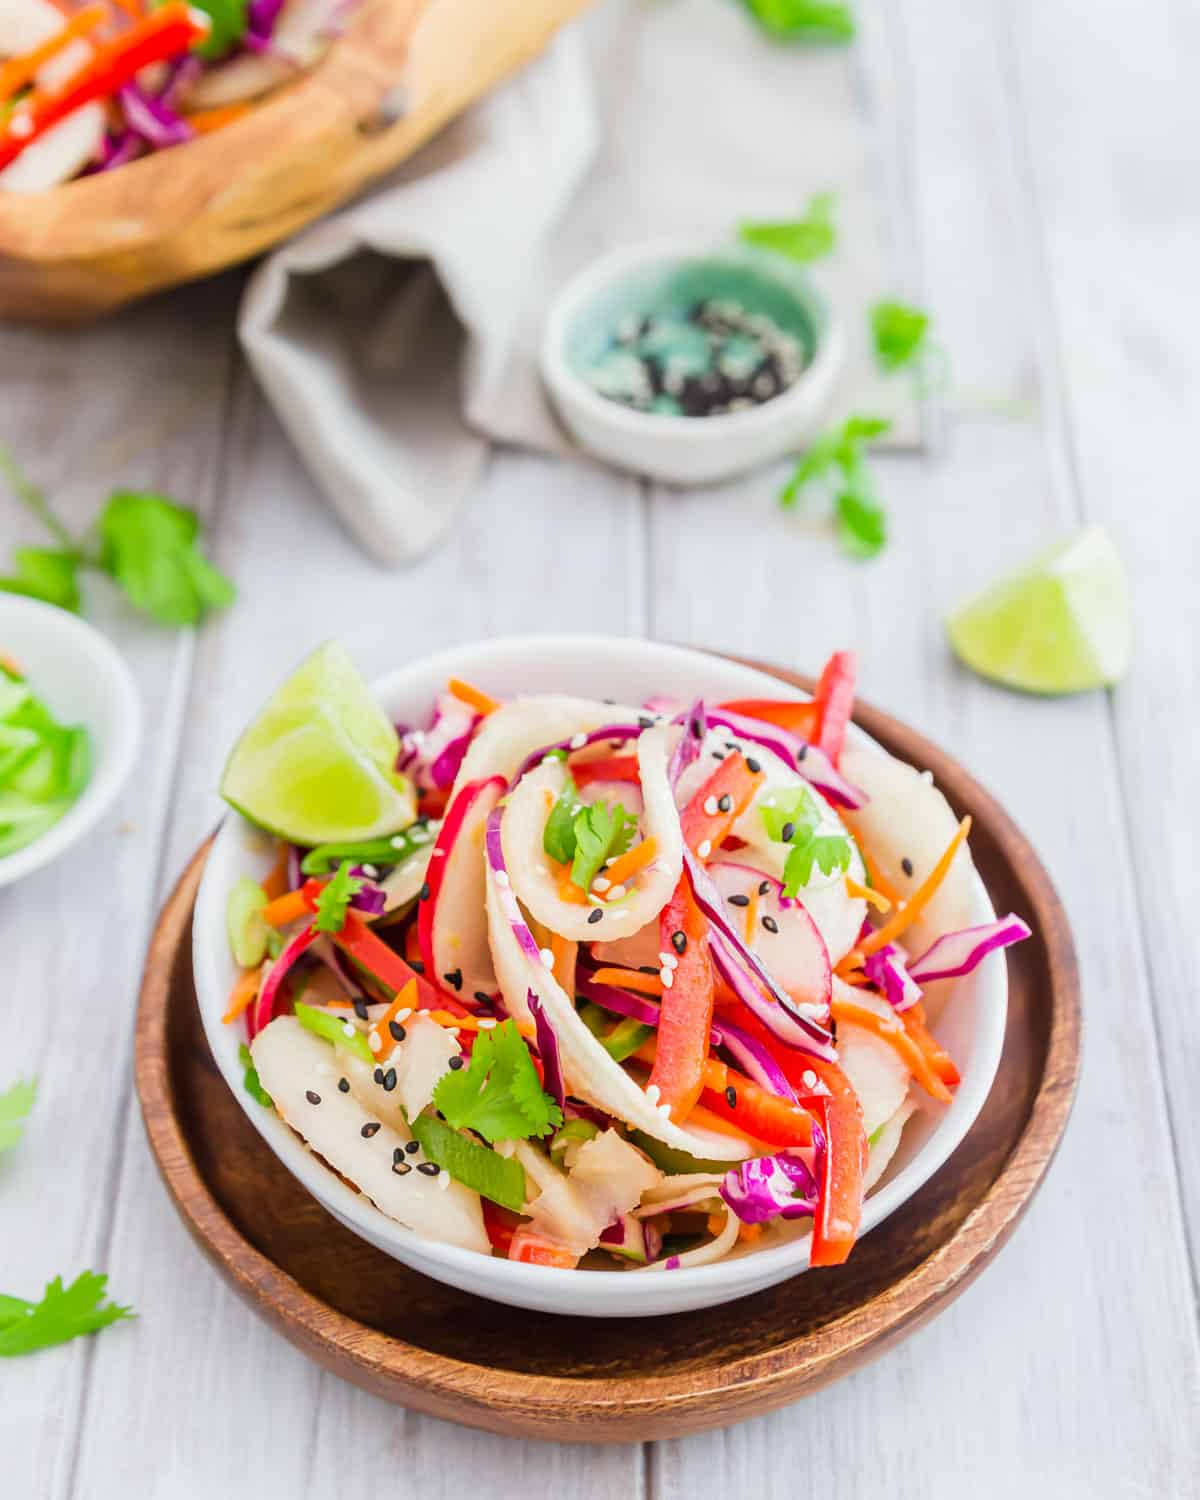 Bright colorful vegetables and kohlrabi noodles make a deliciously healthy vegetarian salad dressed with a Thai vinaigrette.